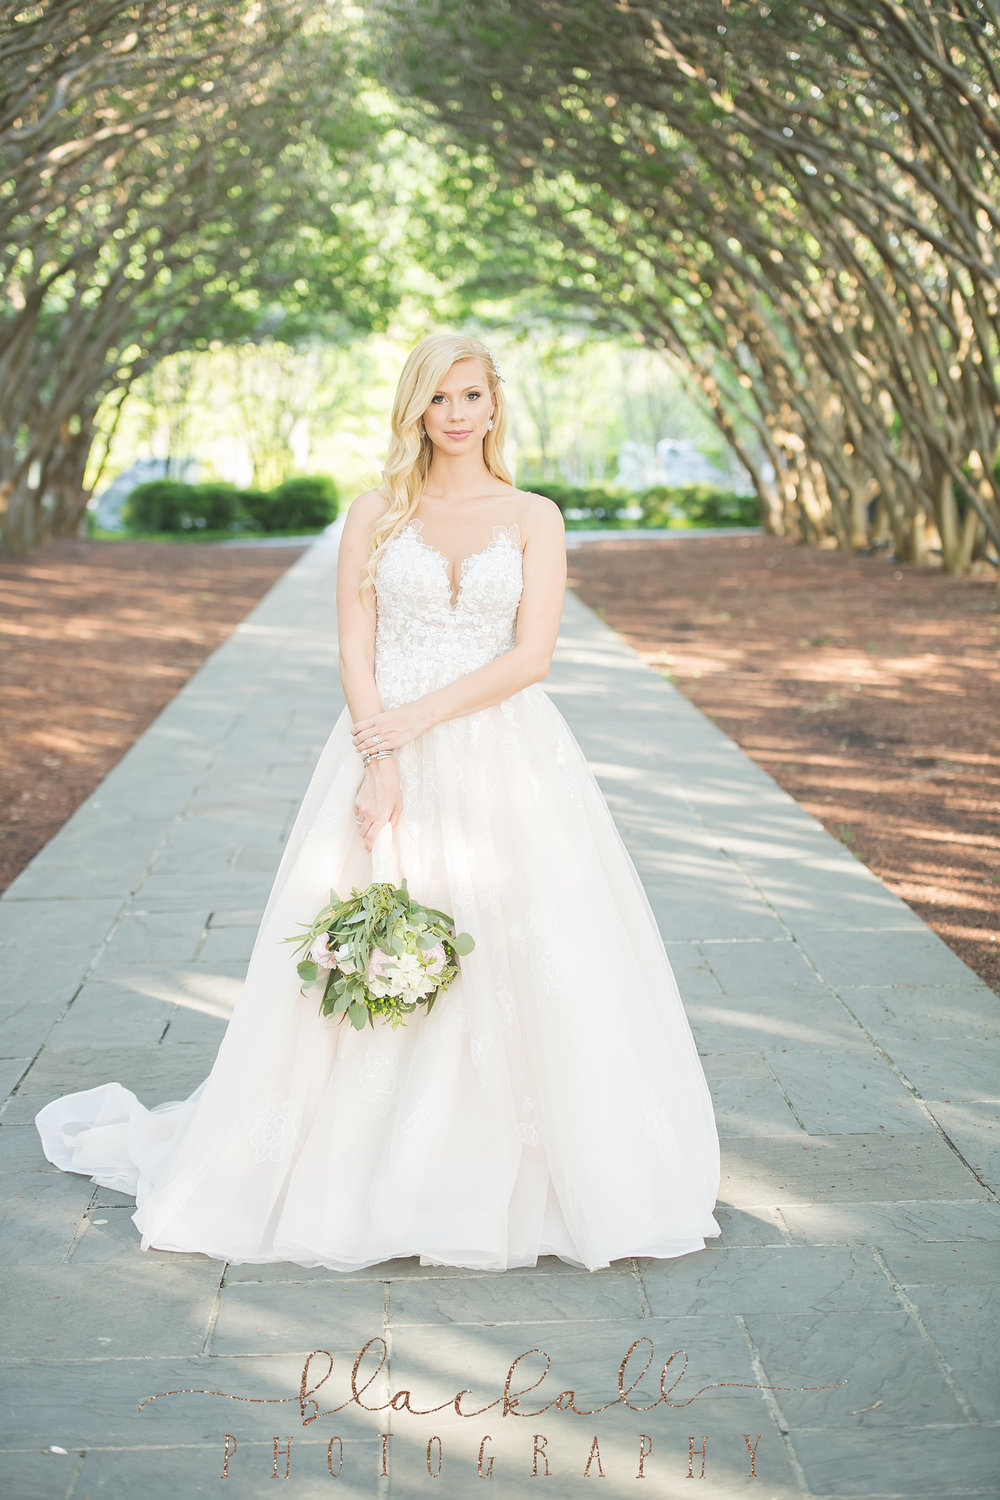 BRIDALS_BlackallPhotography_8.JPG